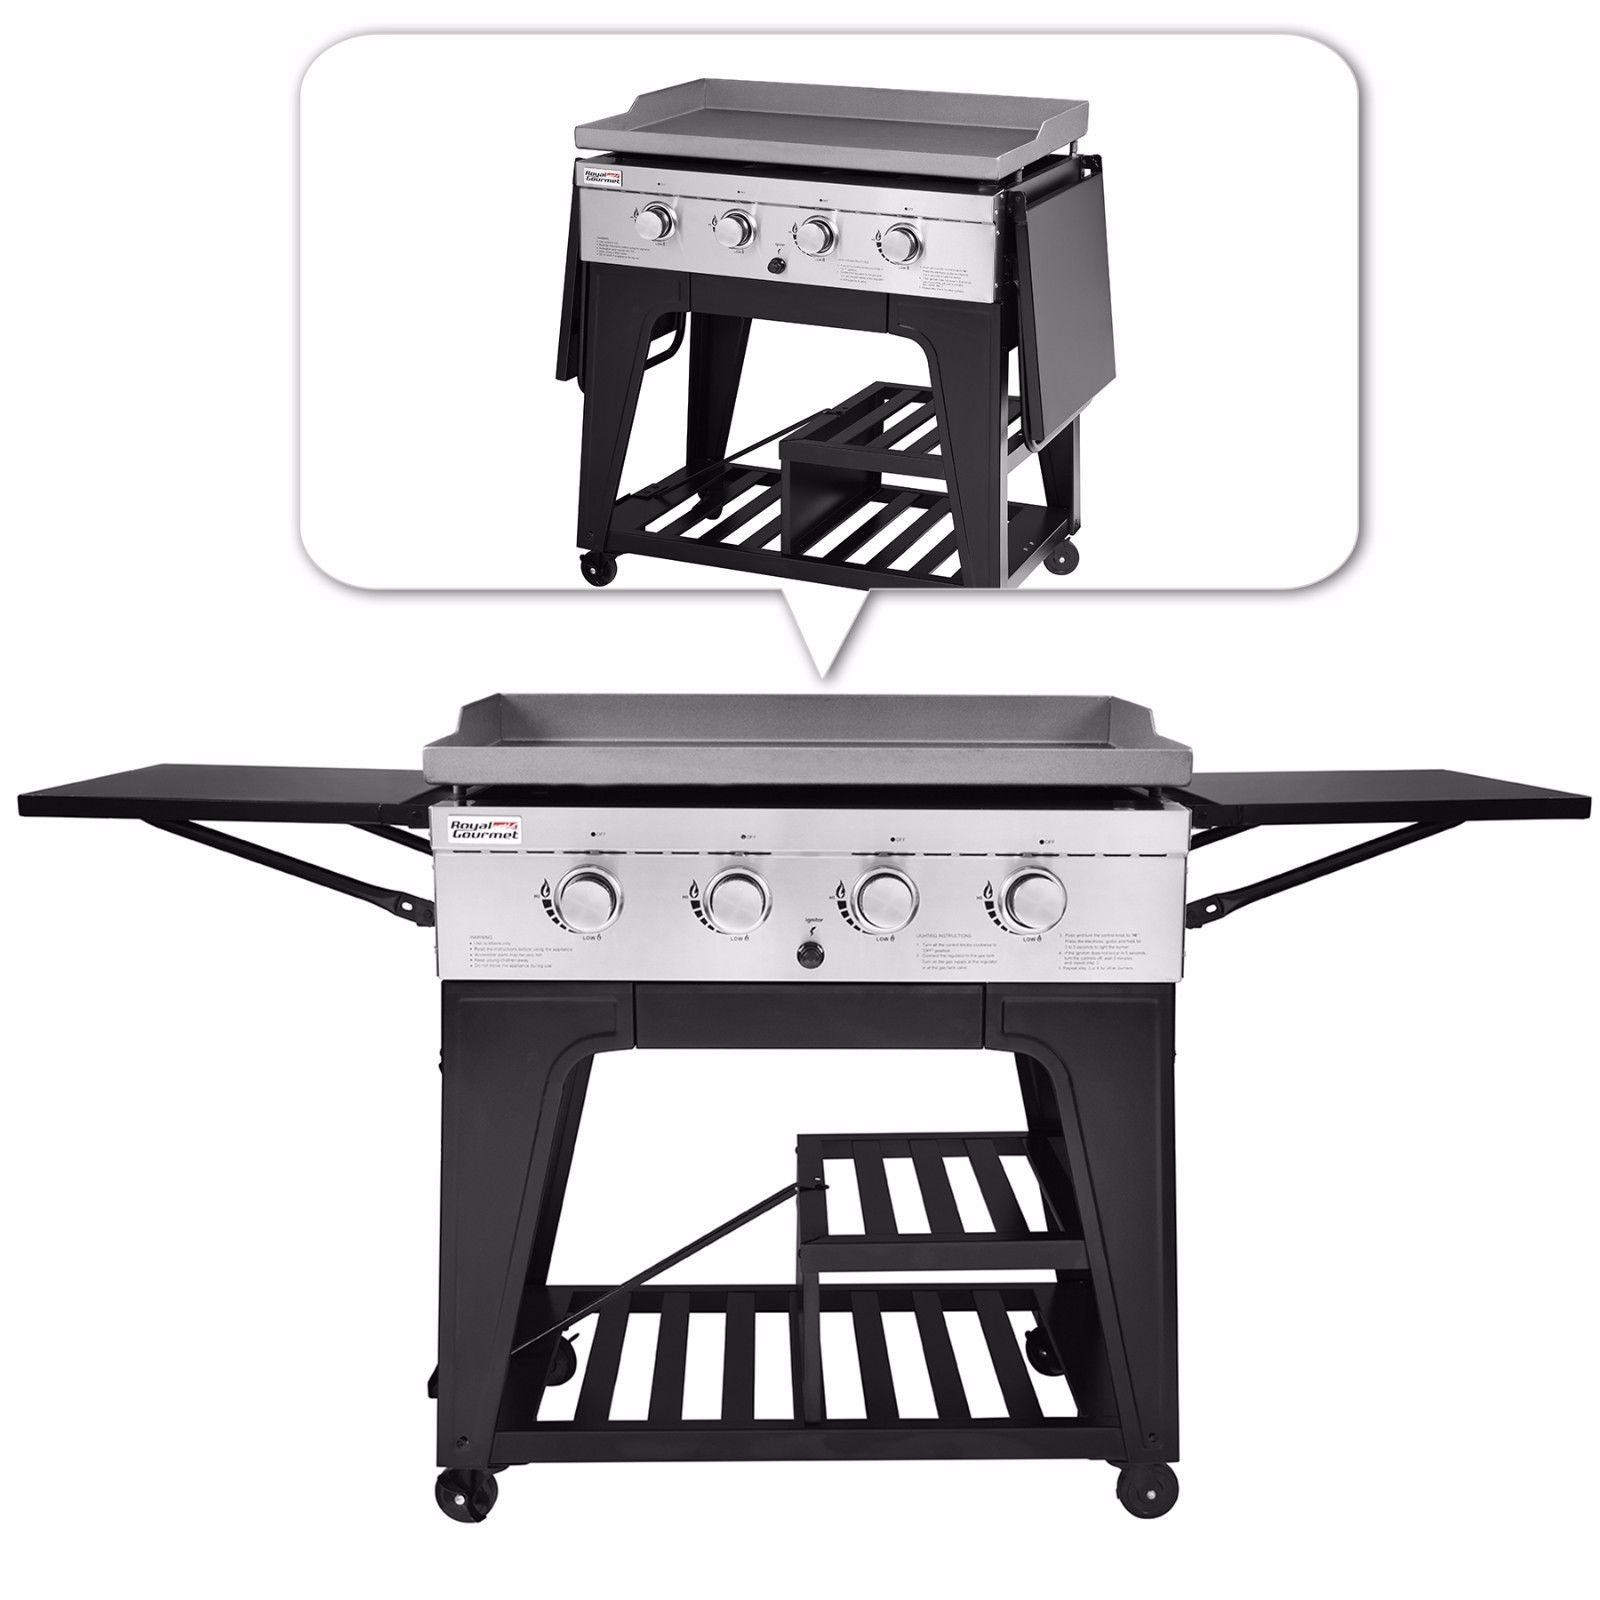 Royal Gourmet GB4000 4-Burner BBQ Gas Propane Grill Griddle